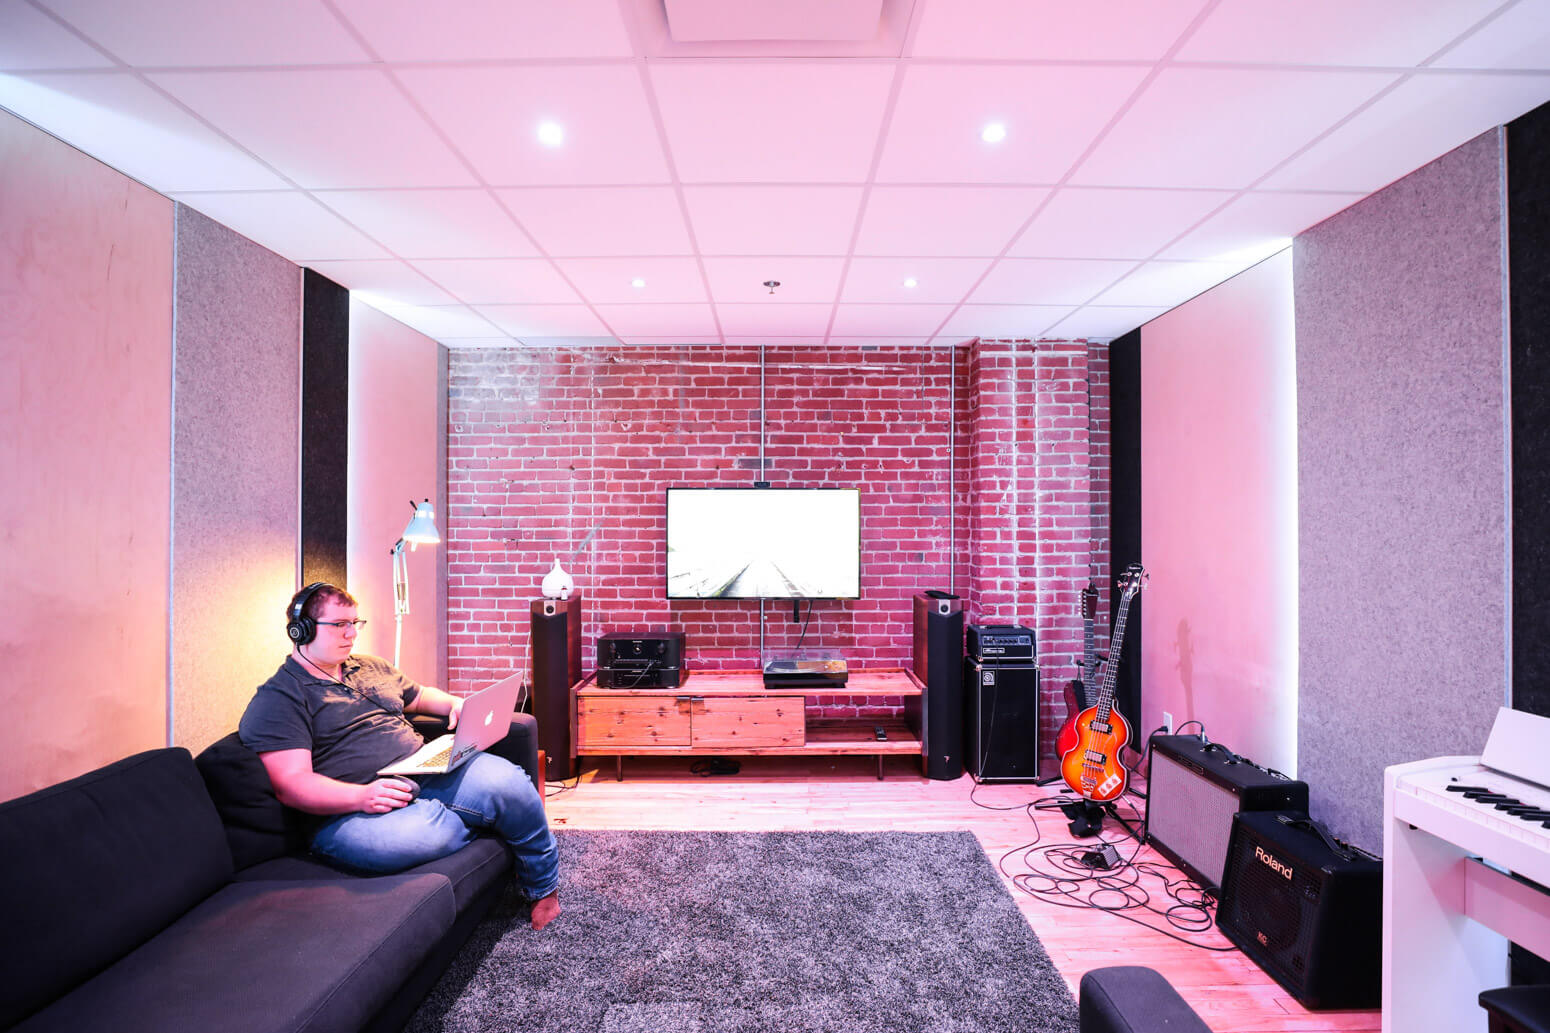 Shutterstock Montreal Office Killer Spaces-15